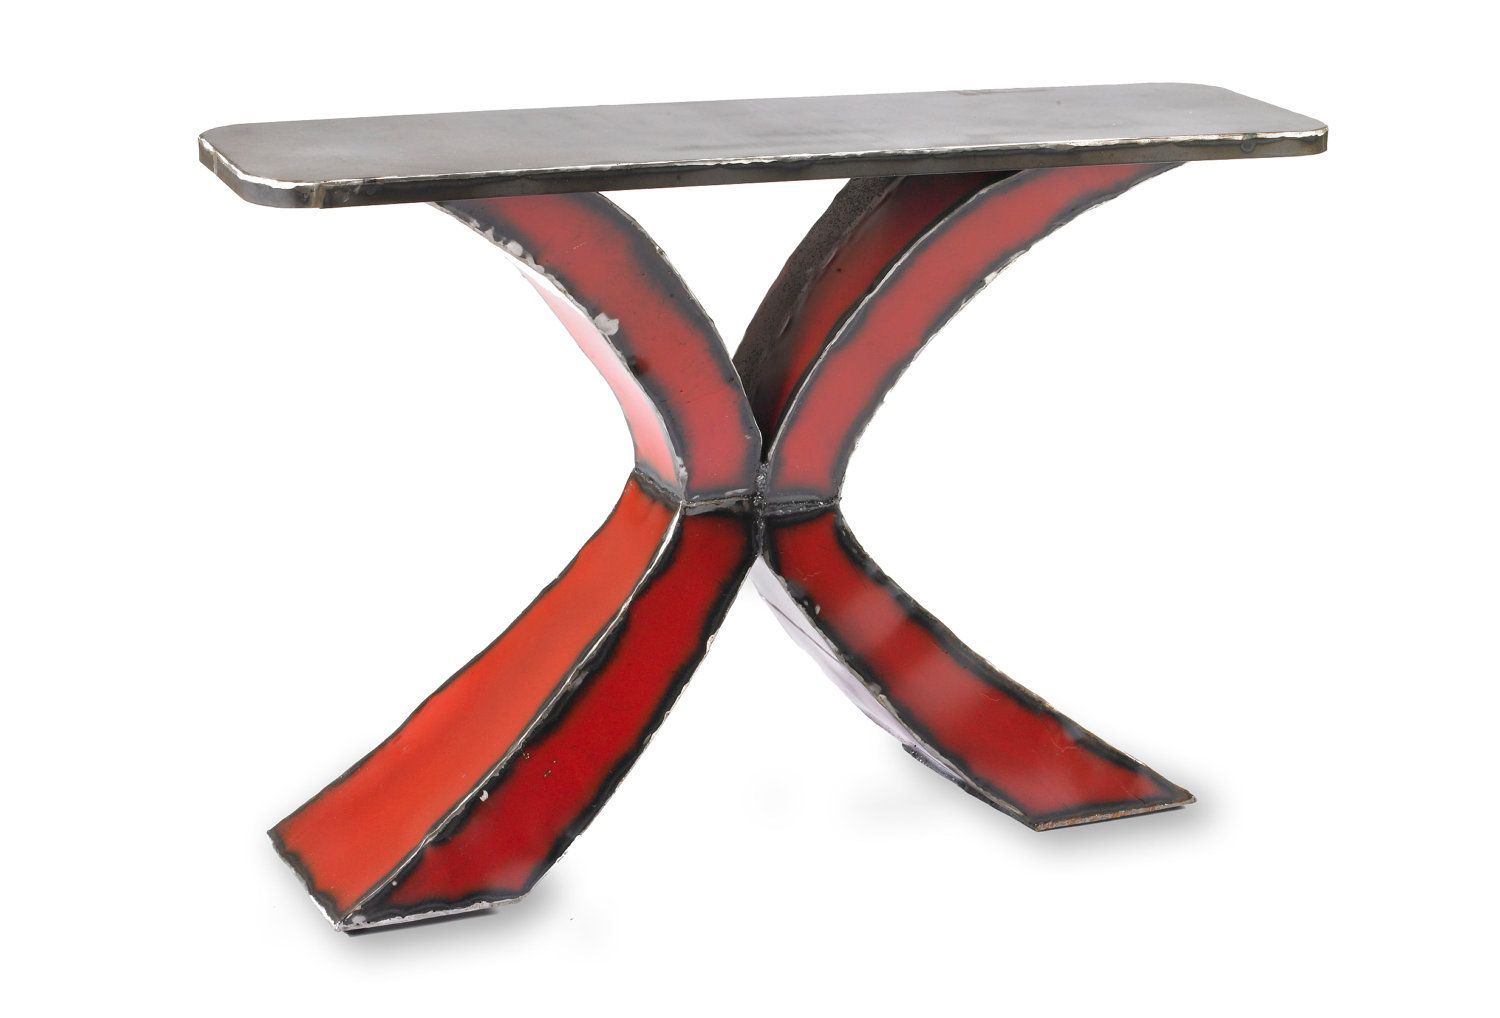 Metal table red x console 220000 via etsy things to make metal table red x console modern red entry or console table geotapseo Gallery